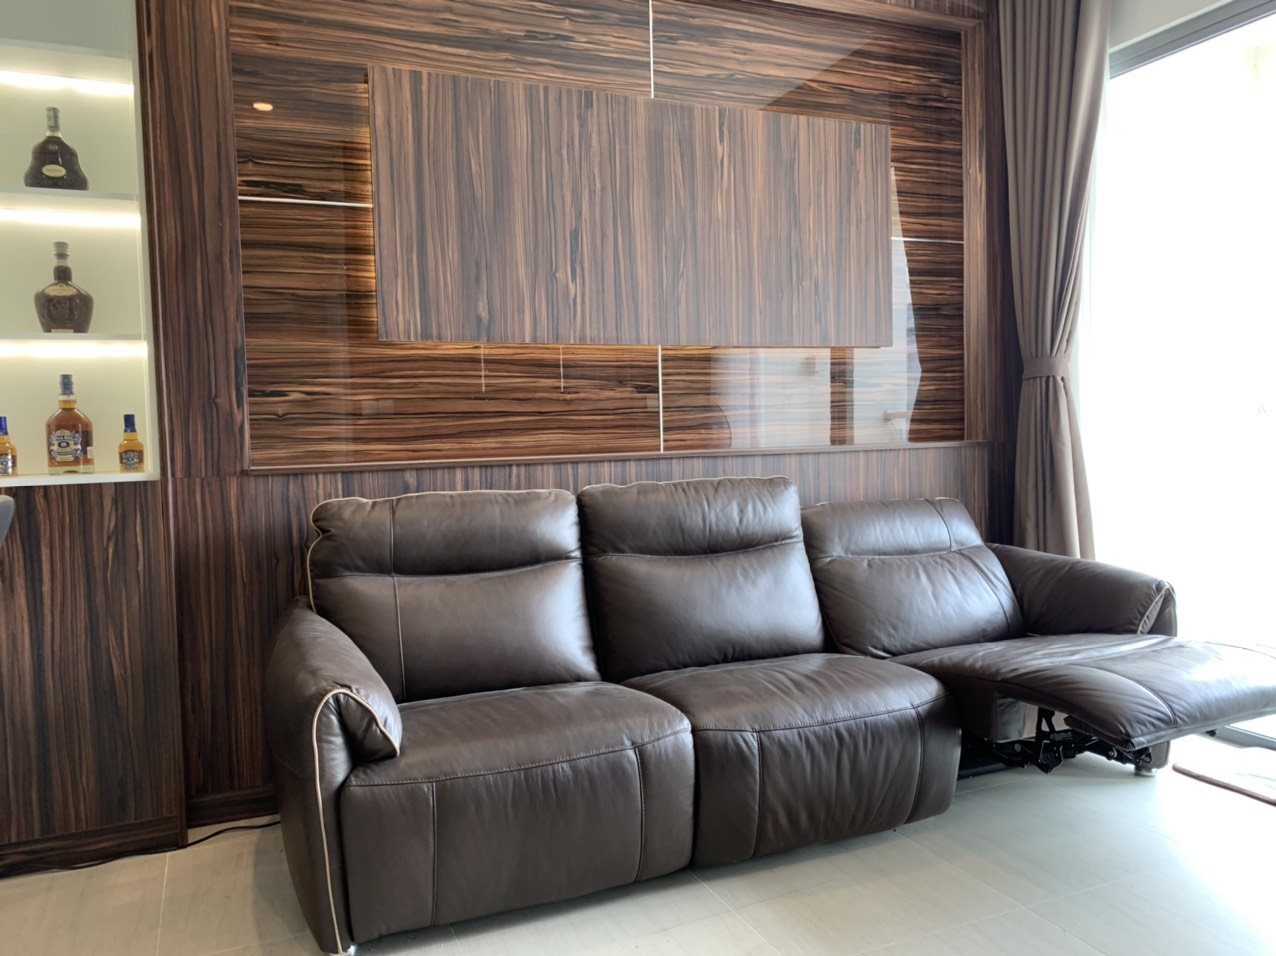 DI0172 - Diamond Island Apartment For Rent & Sale in Ho Chi Minh City - 1 bedroom